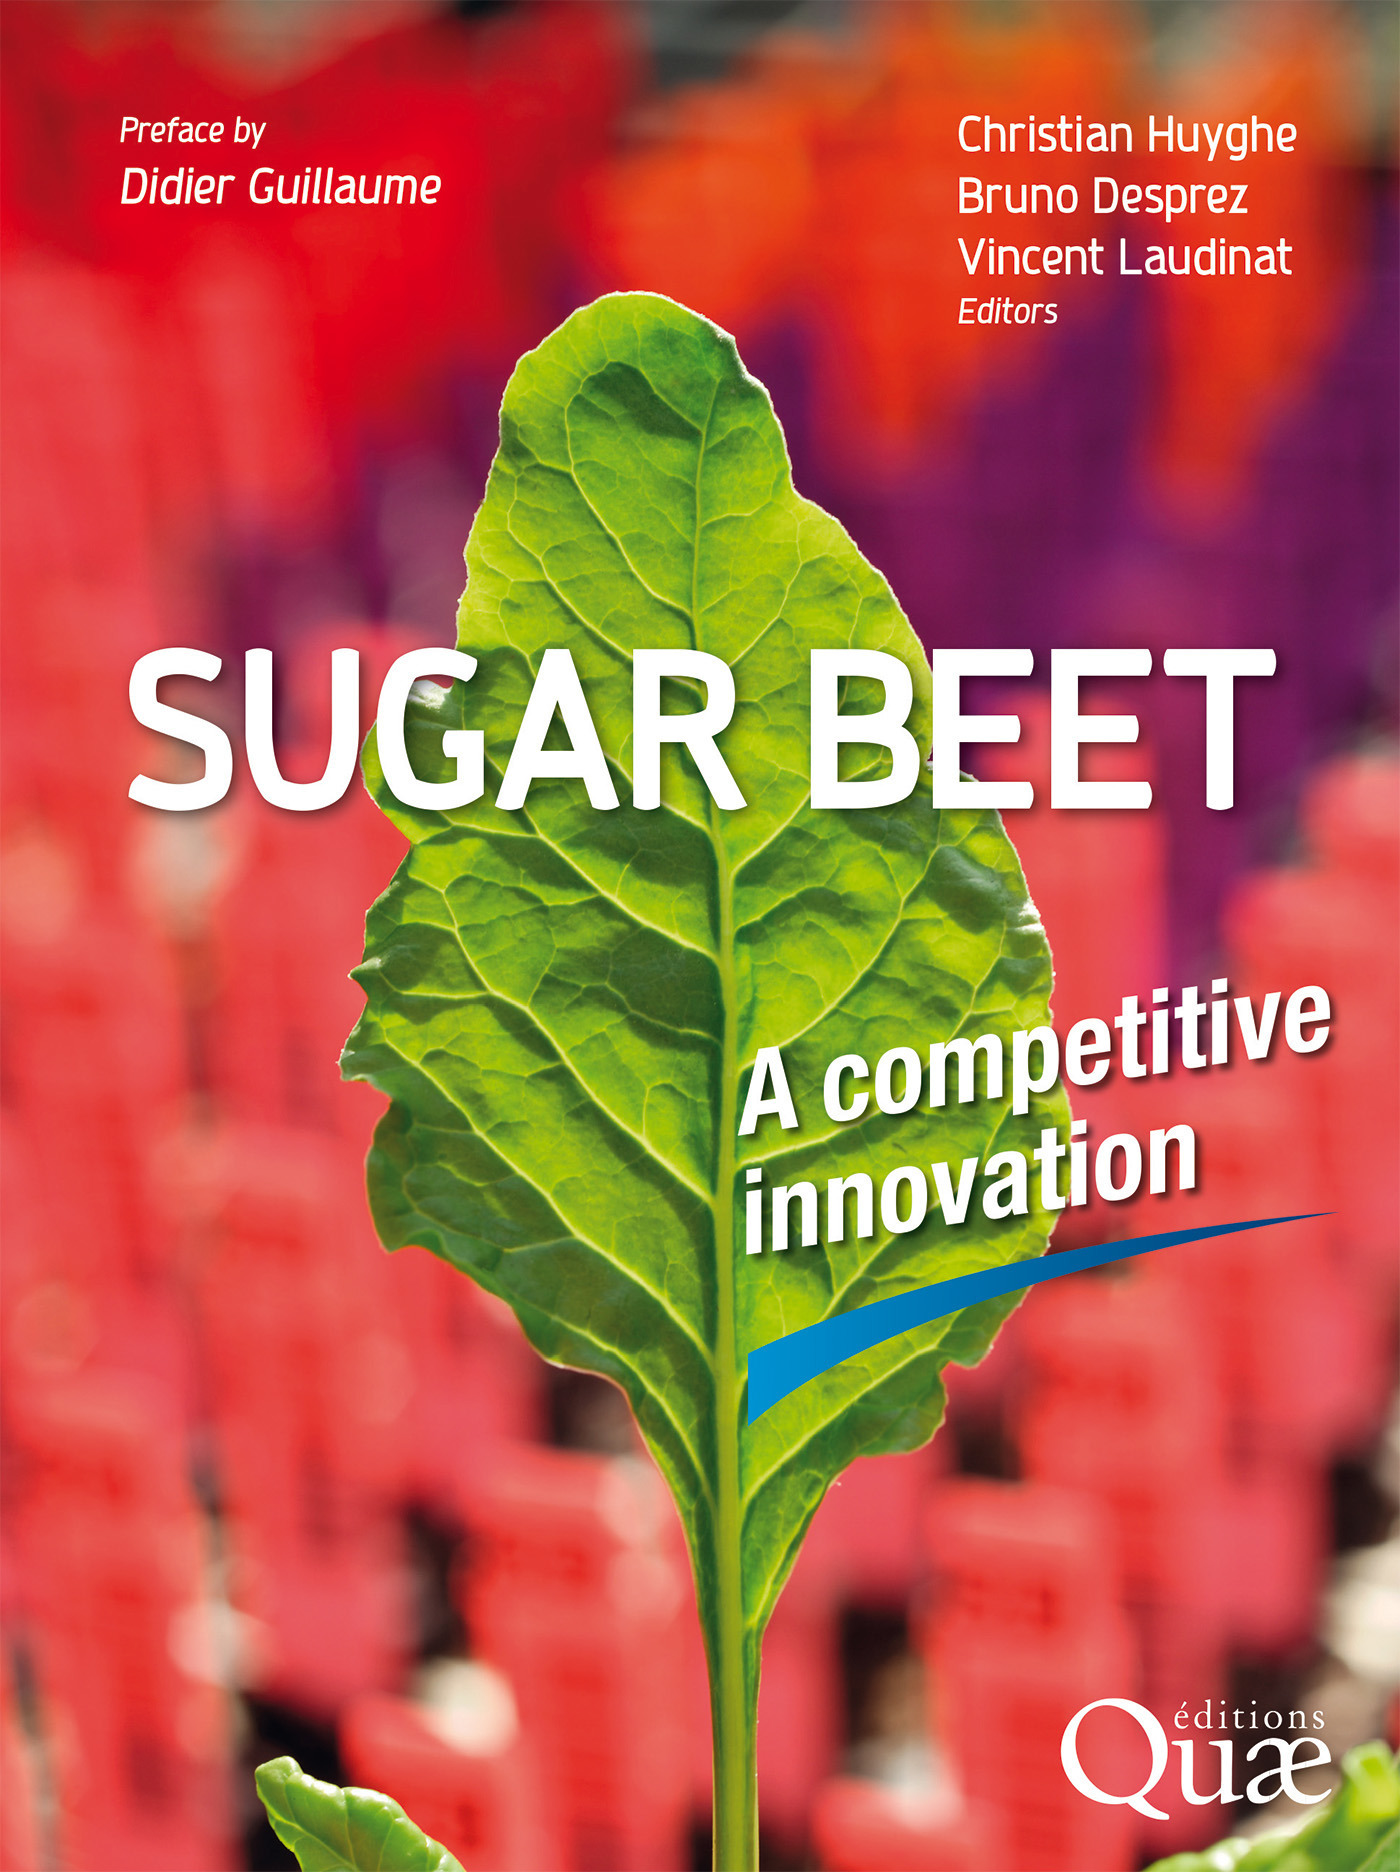 Sugar beet ; a competitive innovation. preface by didier guillaume